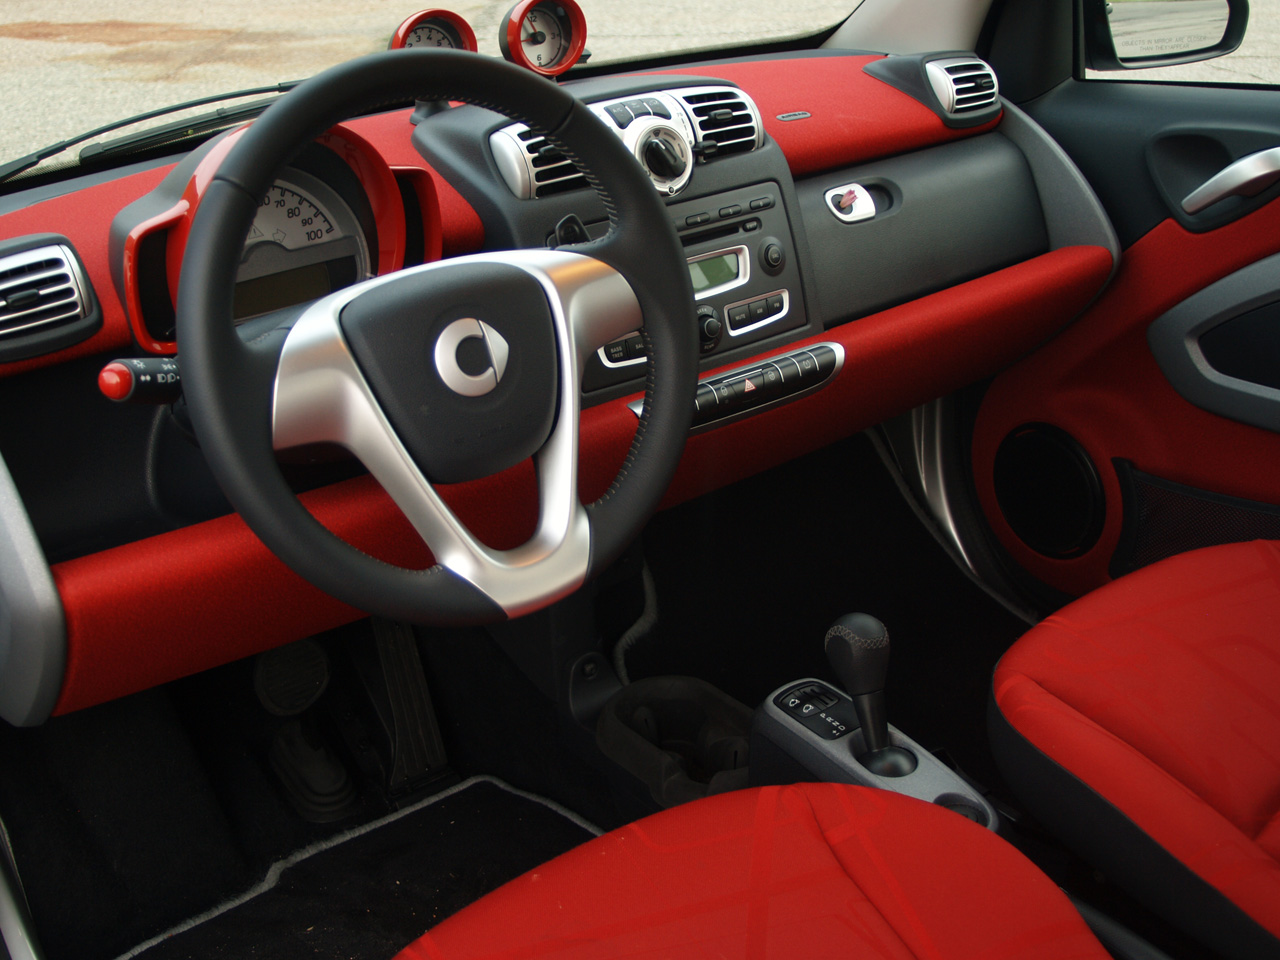 2009 smart fortwo information and photos momentcar. Black Bedroom Furniture Sets. Home Design Ideas